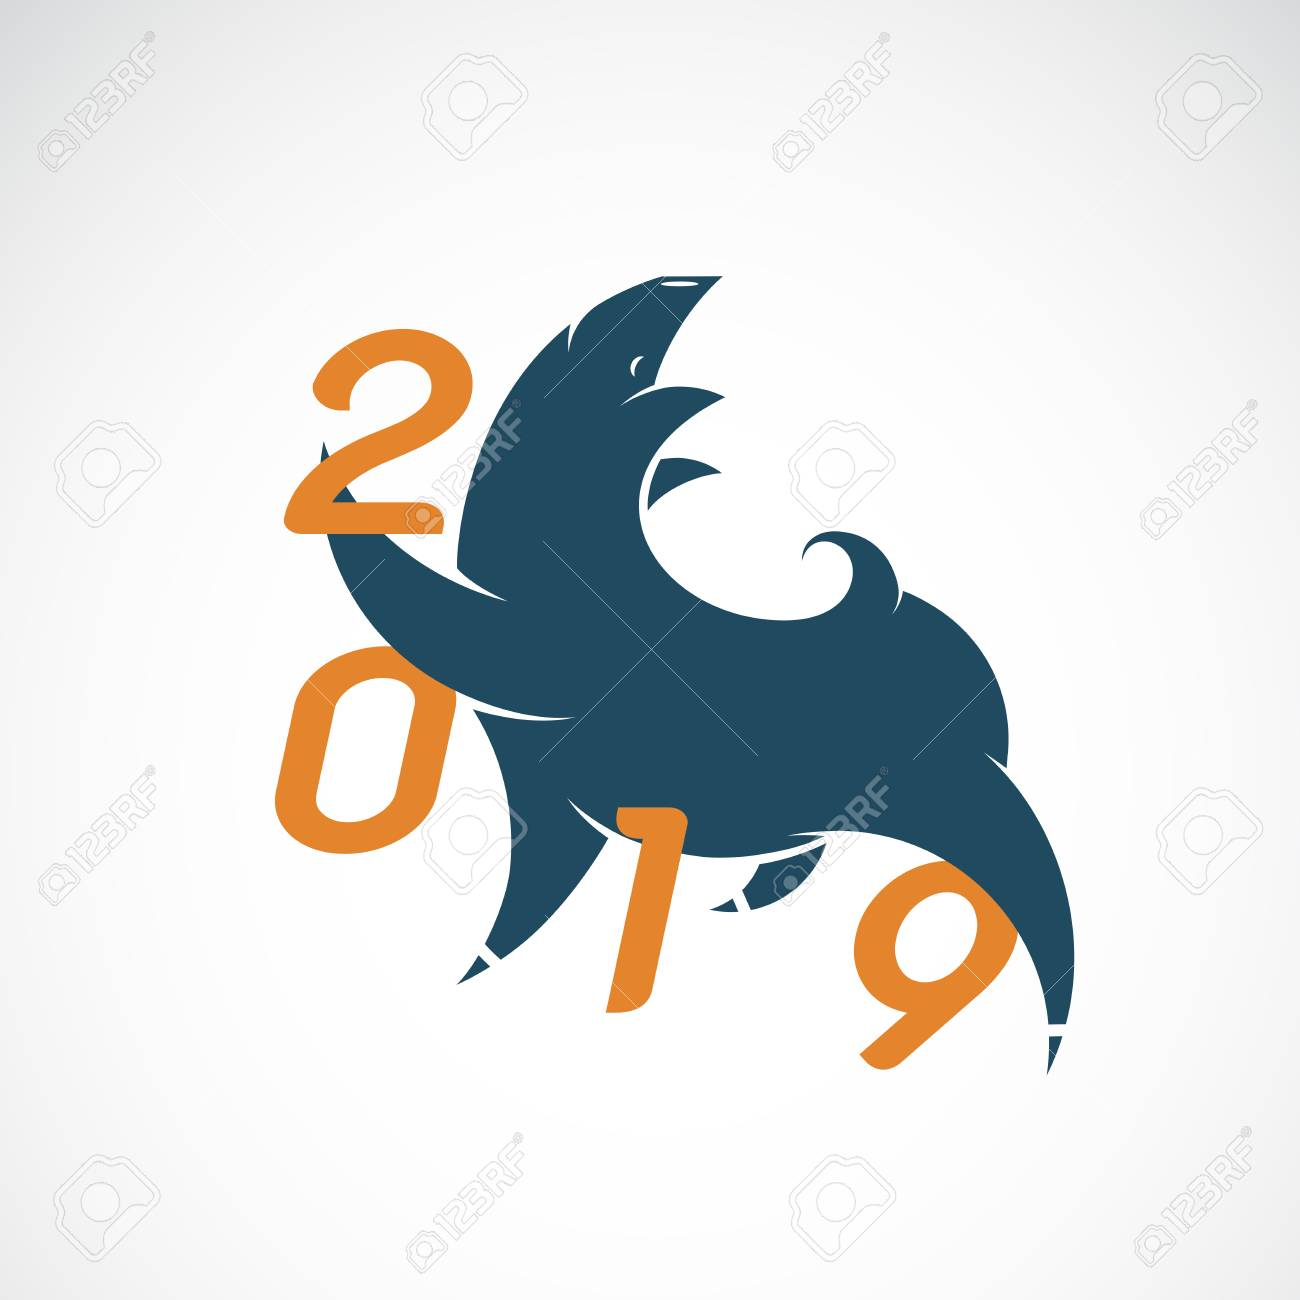 vector vector illustration of pig design 2019 new year card year of the pig design for greeting cards banners posters invitations easy editable